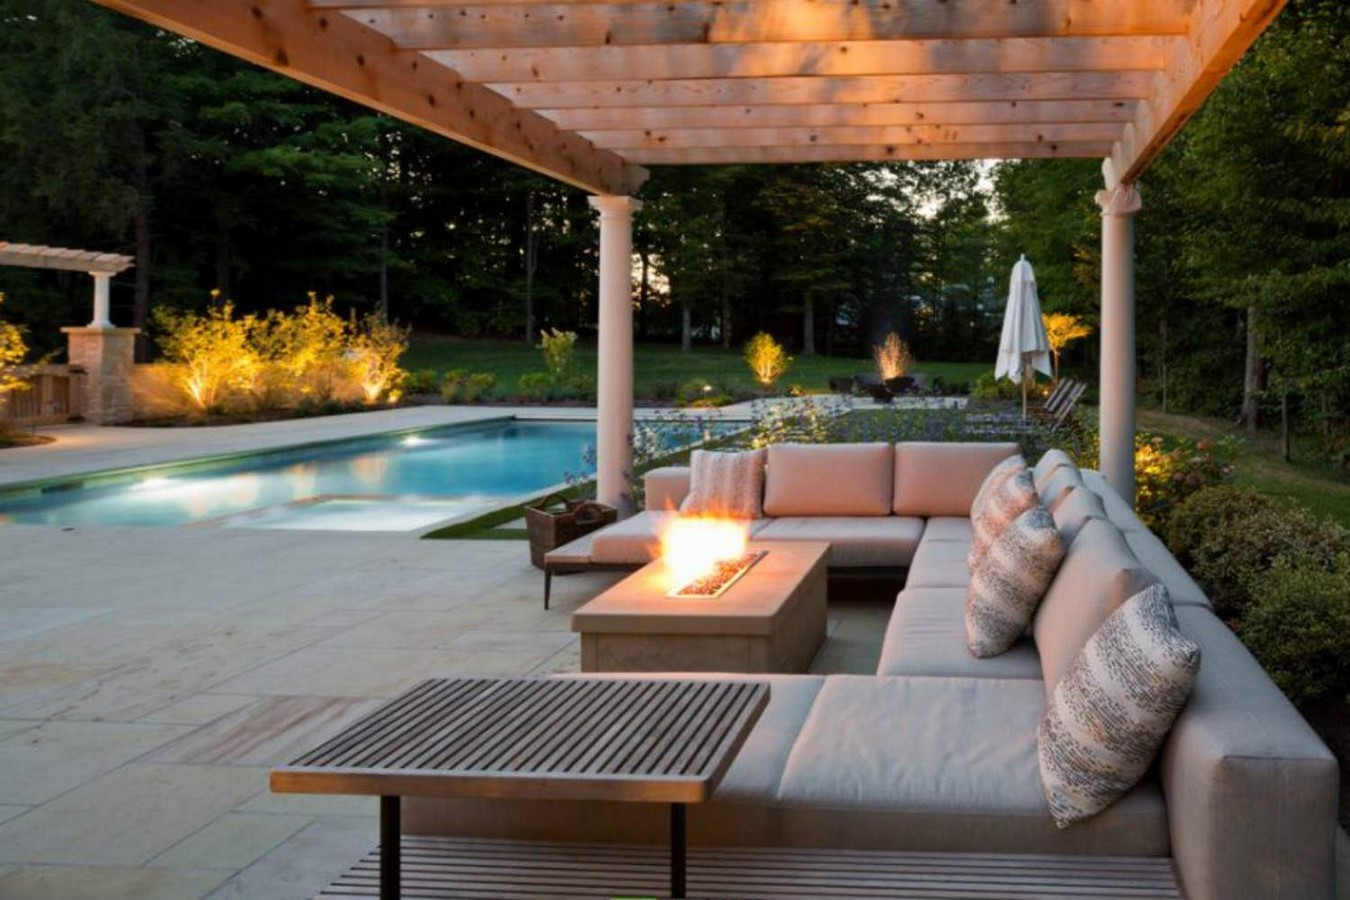 50 Ideas and Tips for Landscaping - Sheet49